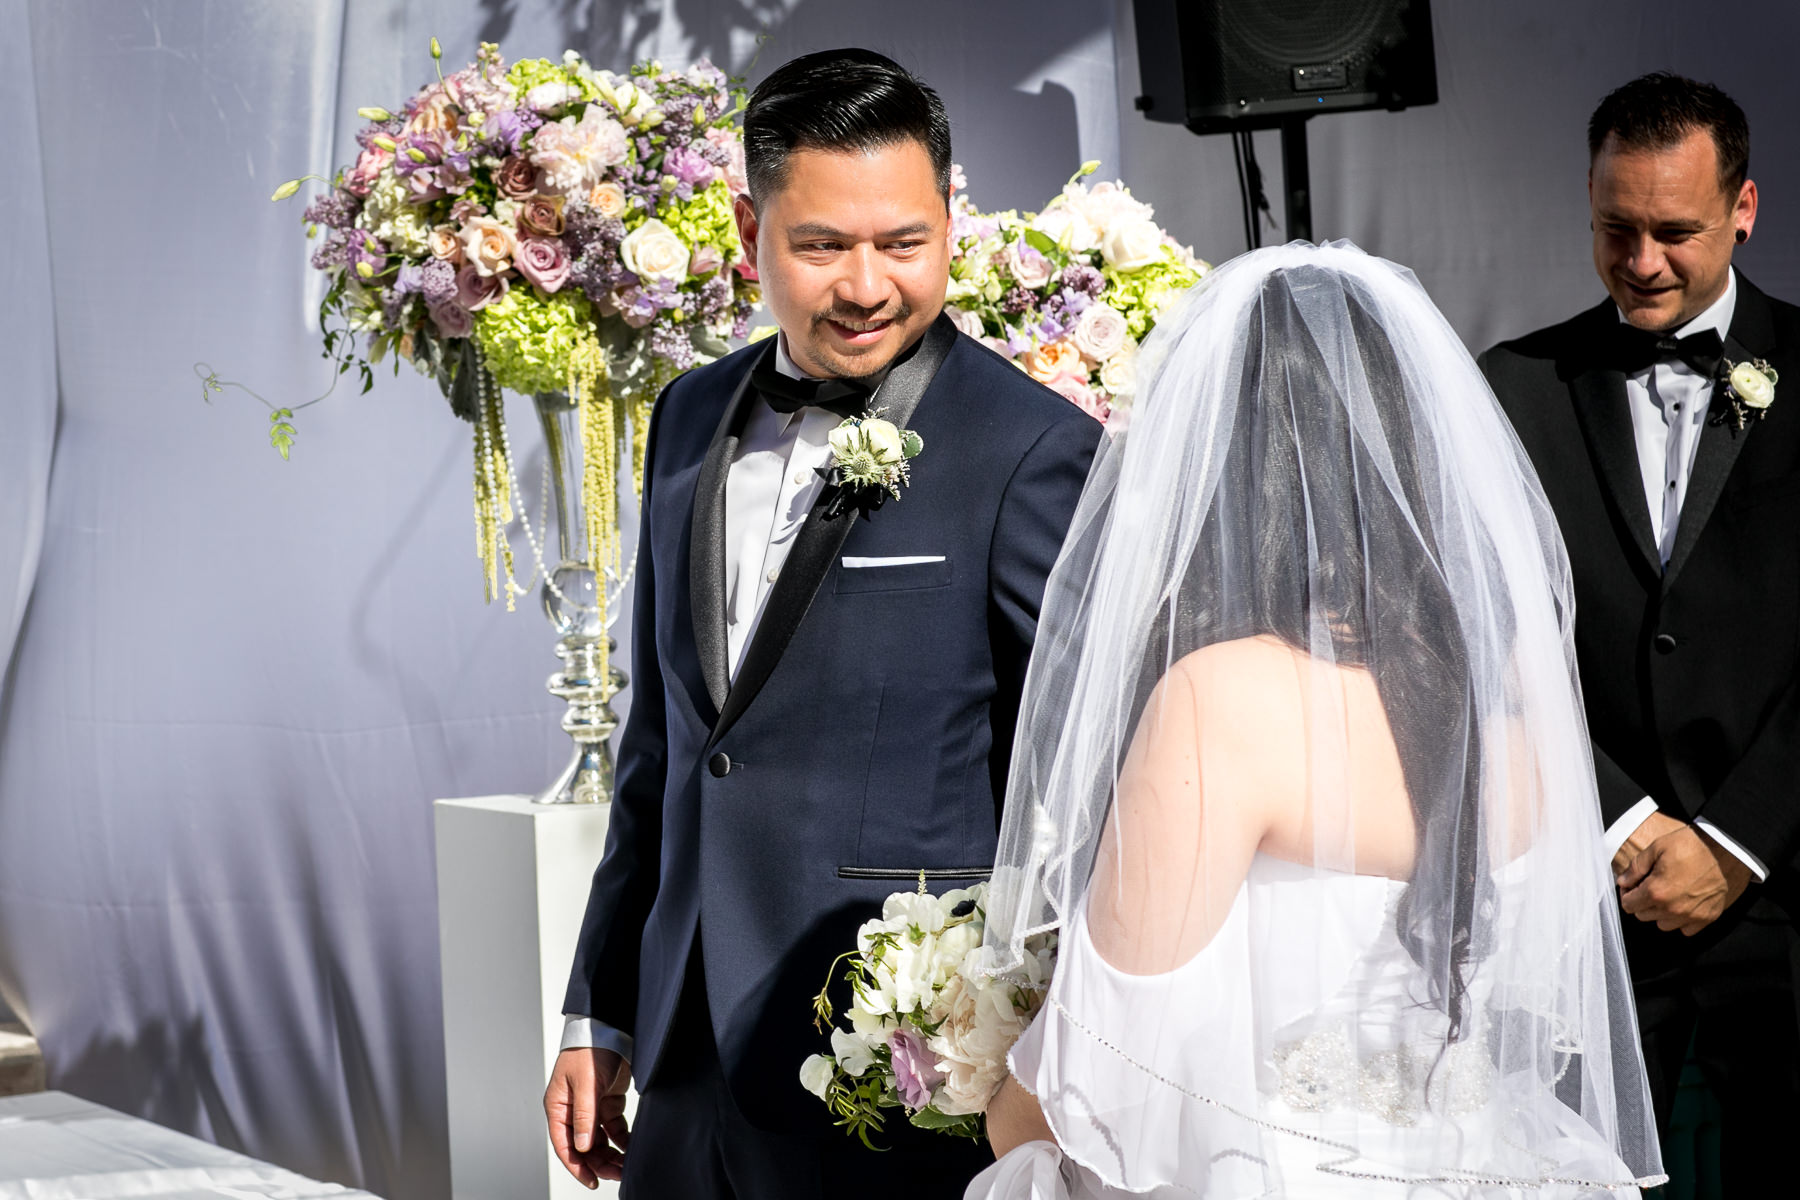 groom sees bride for first time walking down the aisle at noor pasadena wedding photo